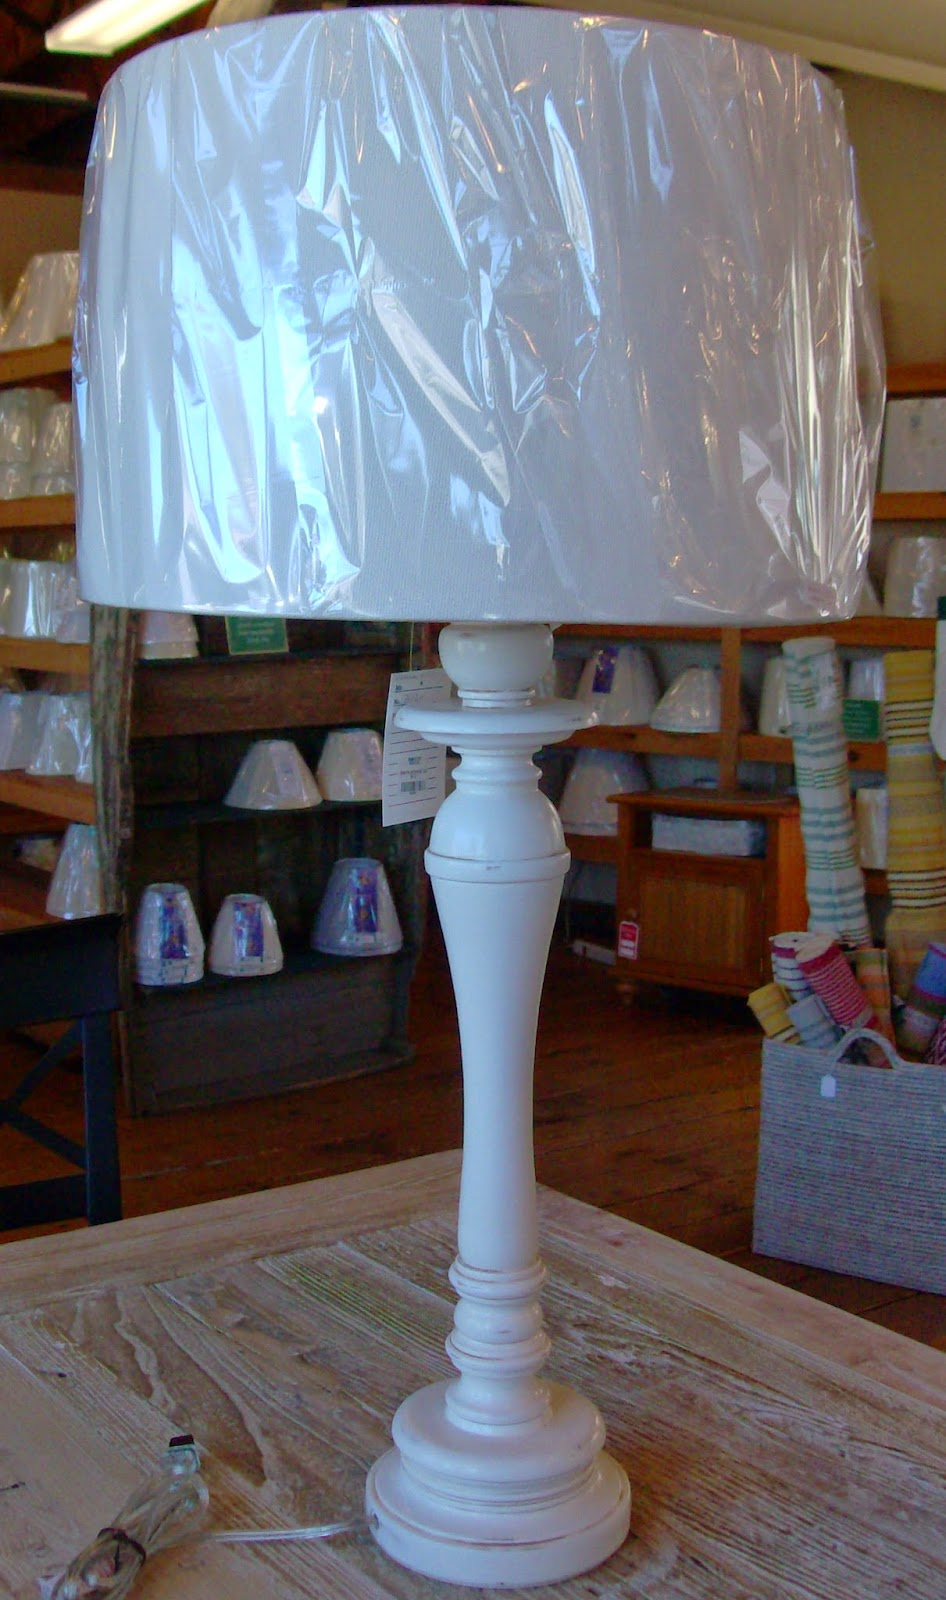 Hildreth S Home Goods Buying A Lampshade 101